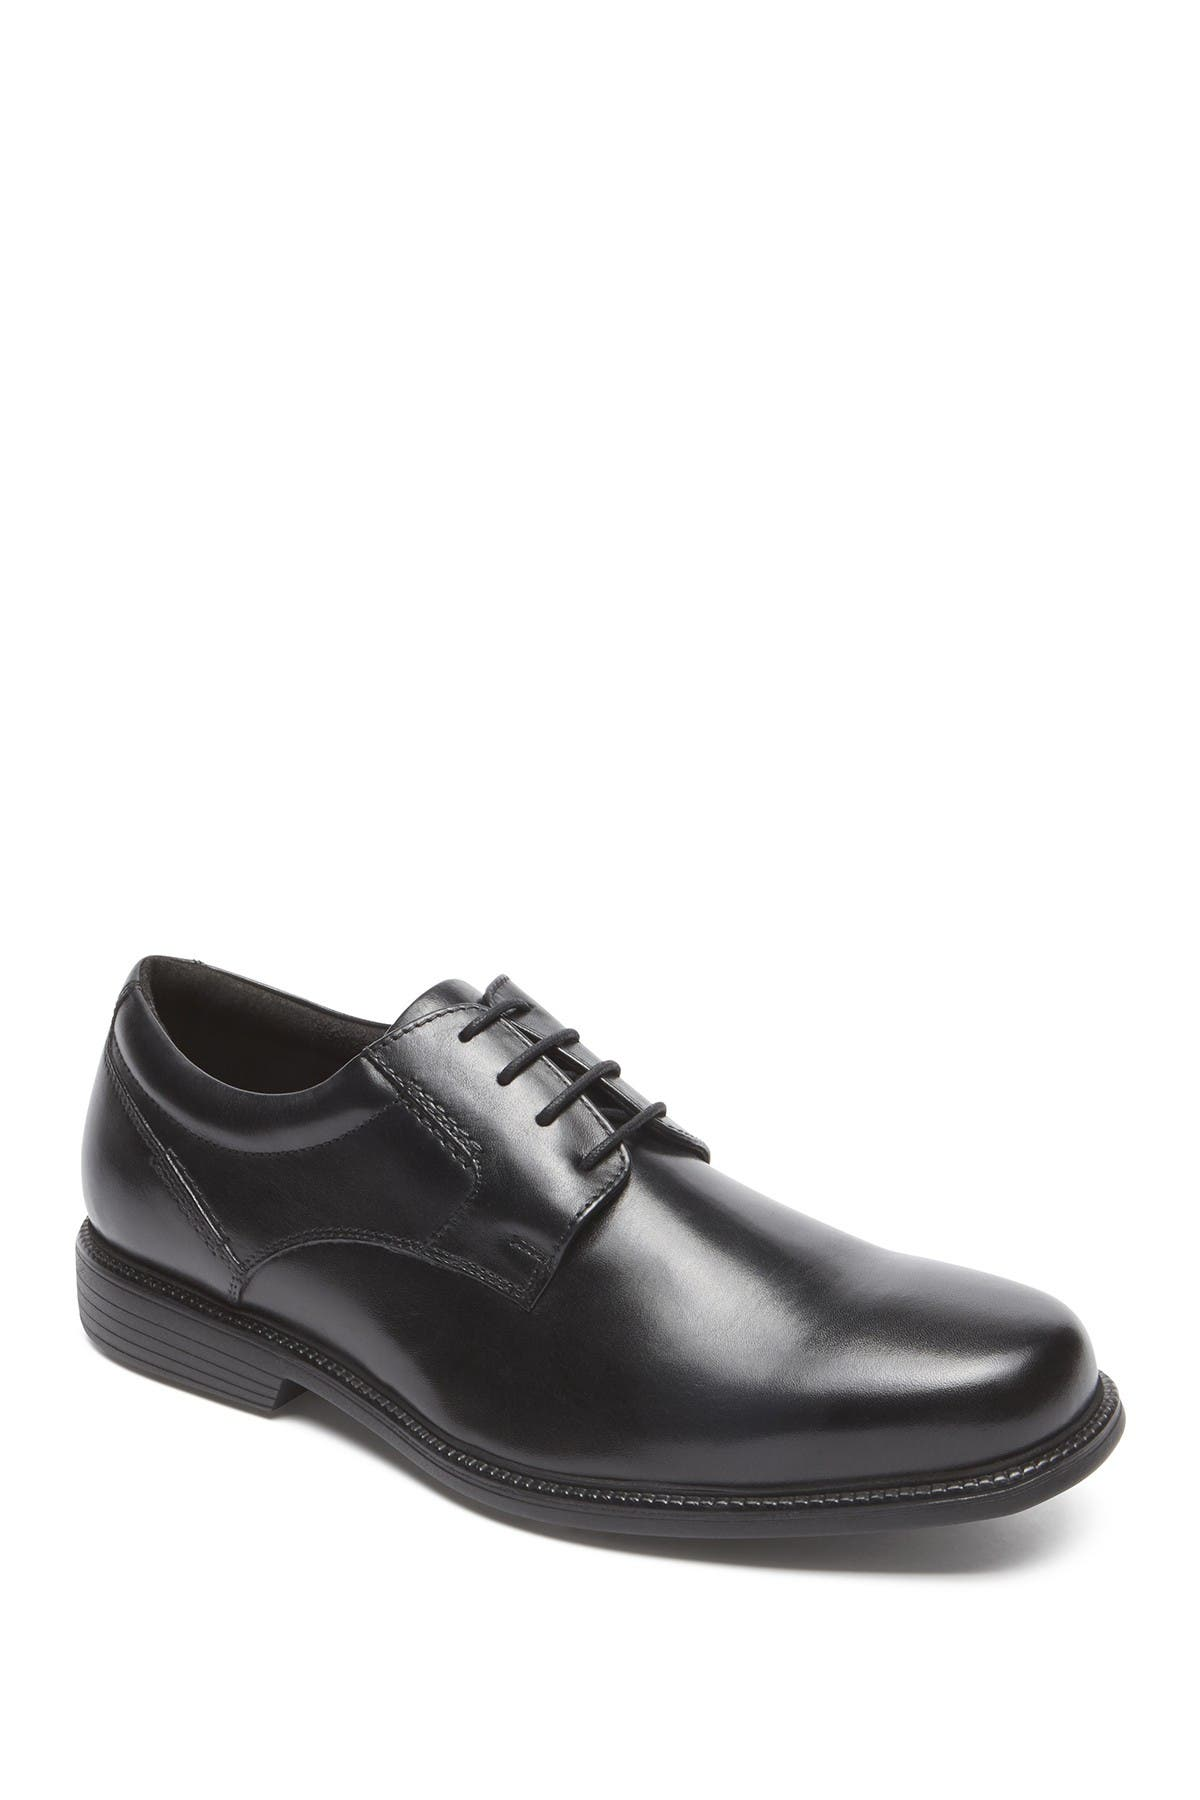 Image of Rockport Charlesroad Plaintoe Derby